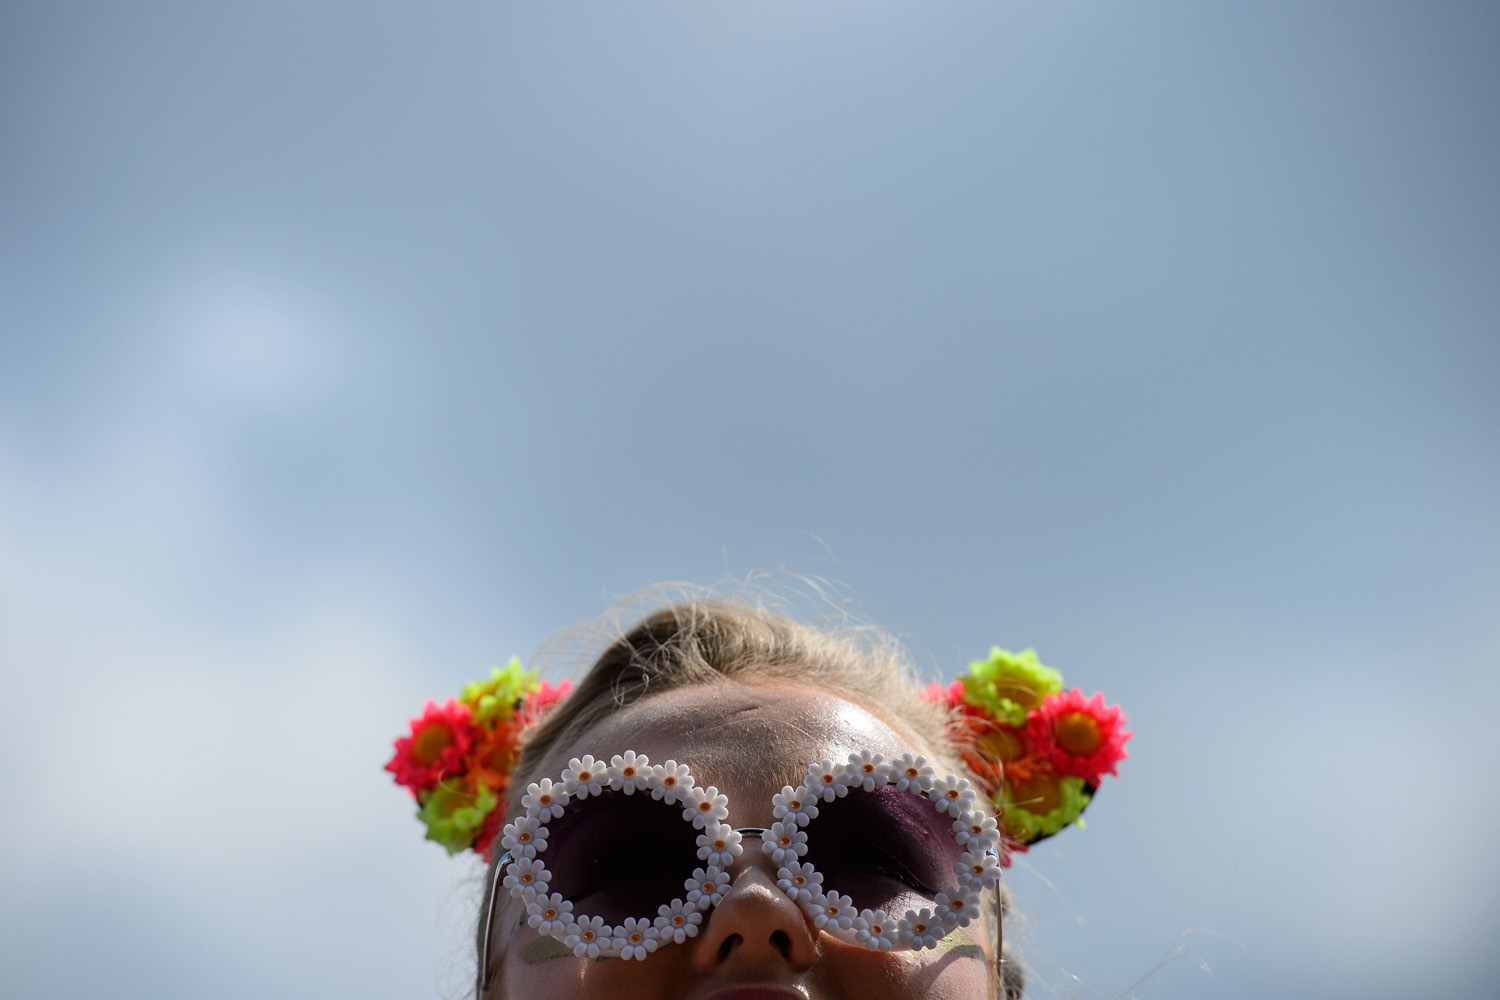 A girl waits for the first act to take to the Pyramid Stage on the last day of the Glastonbury Festival of Music and Performing Arts in Somerset, southwest England, on June 29, 2014.